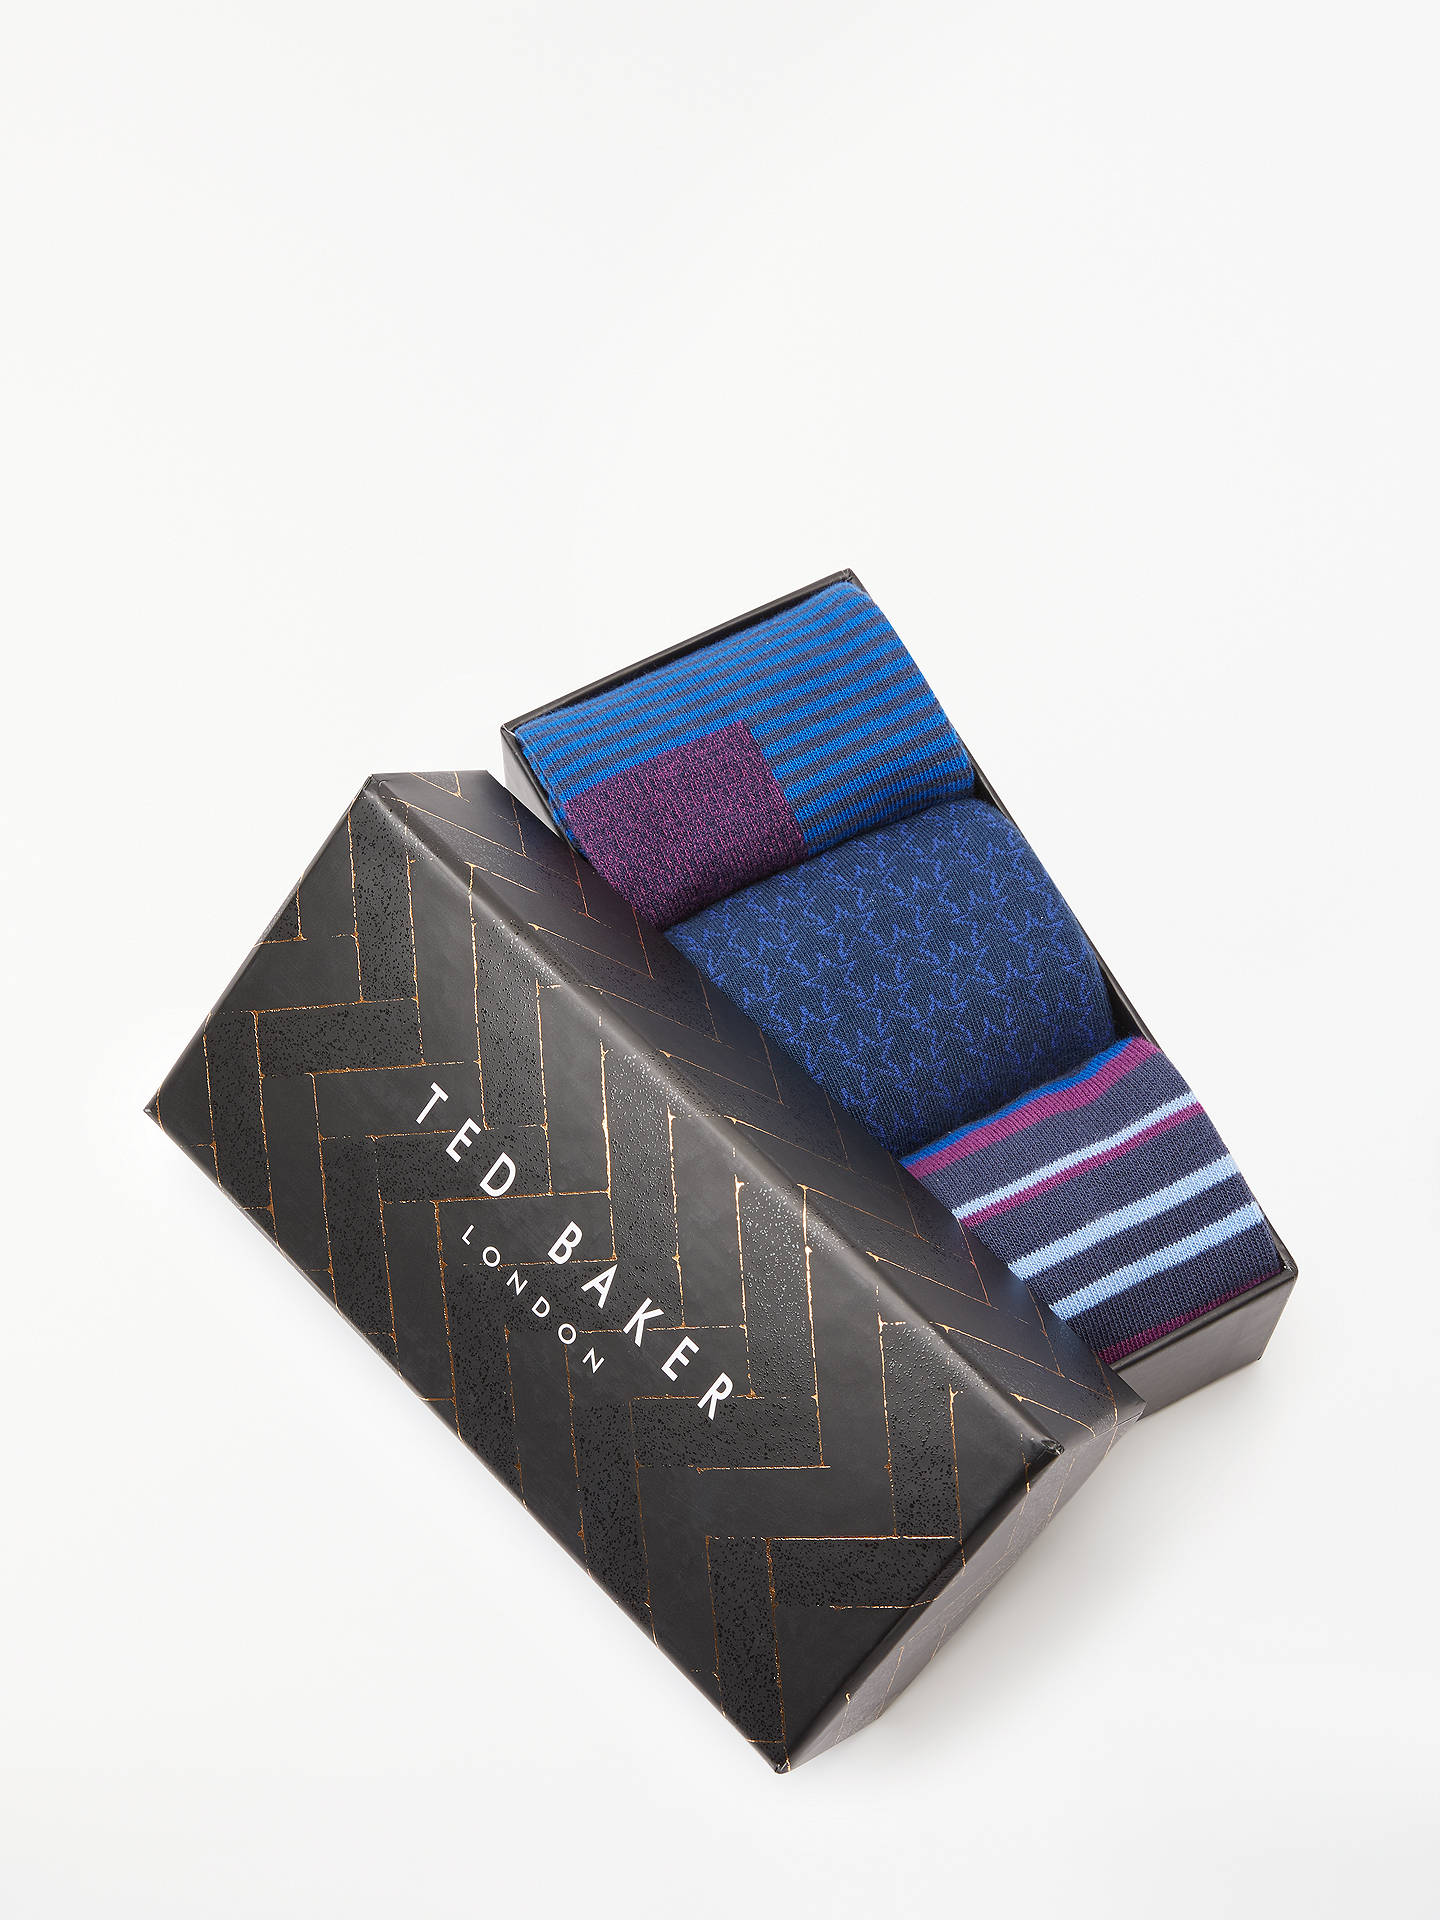 BuyTed Baker Satchin Socks, Pack of 3, One Size, Multi Online at johnlewis.com